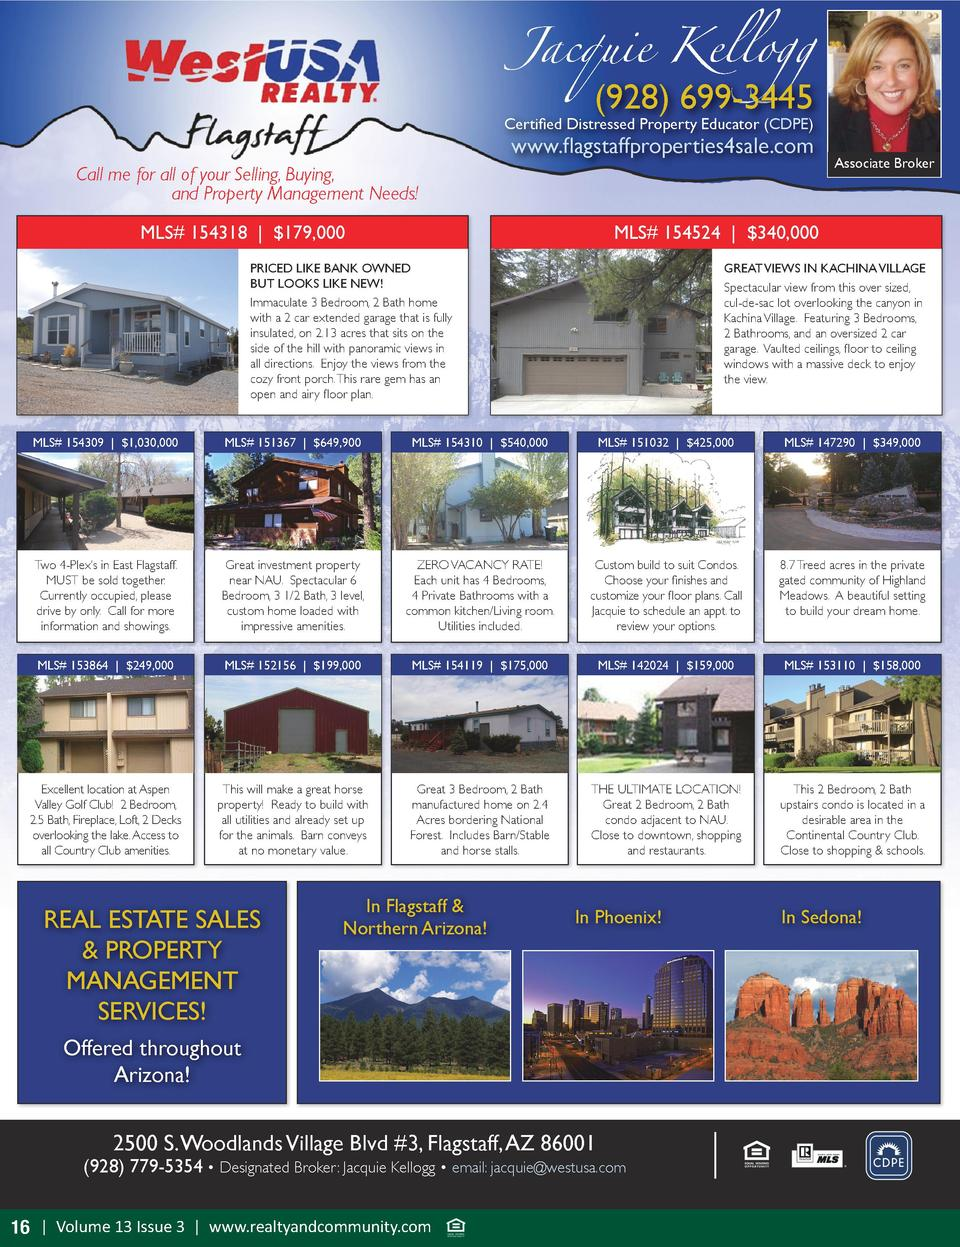 Jacquie Kellogg   928  699-3445  Certified Distressed Property Educator  CDPE   www.flagstaffproperties4sale.com  Call me ...